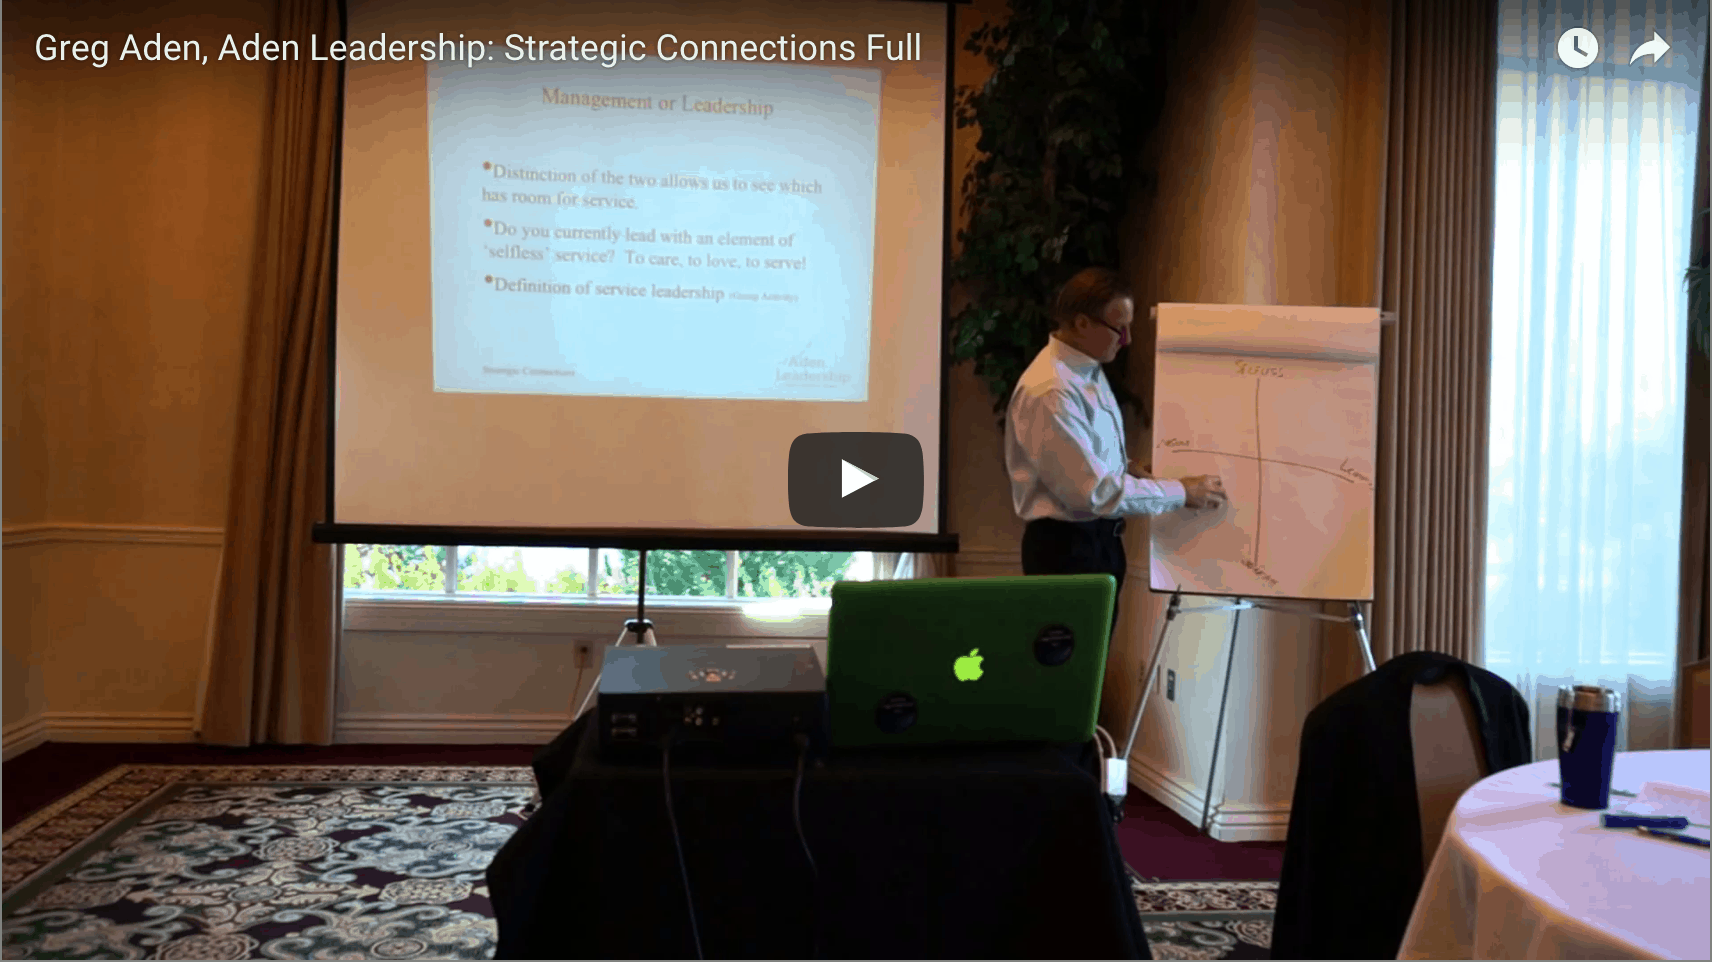 [VIDEO] Introducing Servant Leadership to Strategic Connections Networking Group